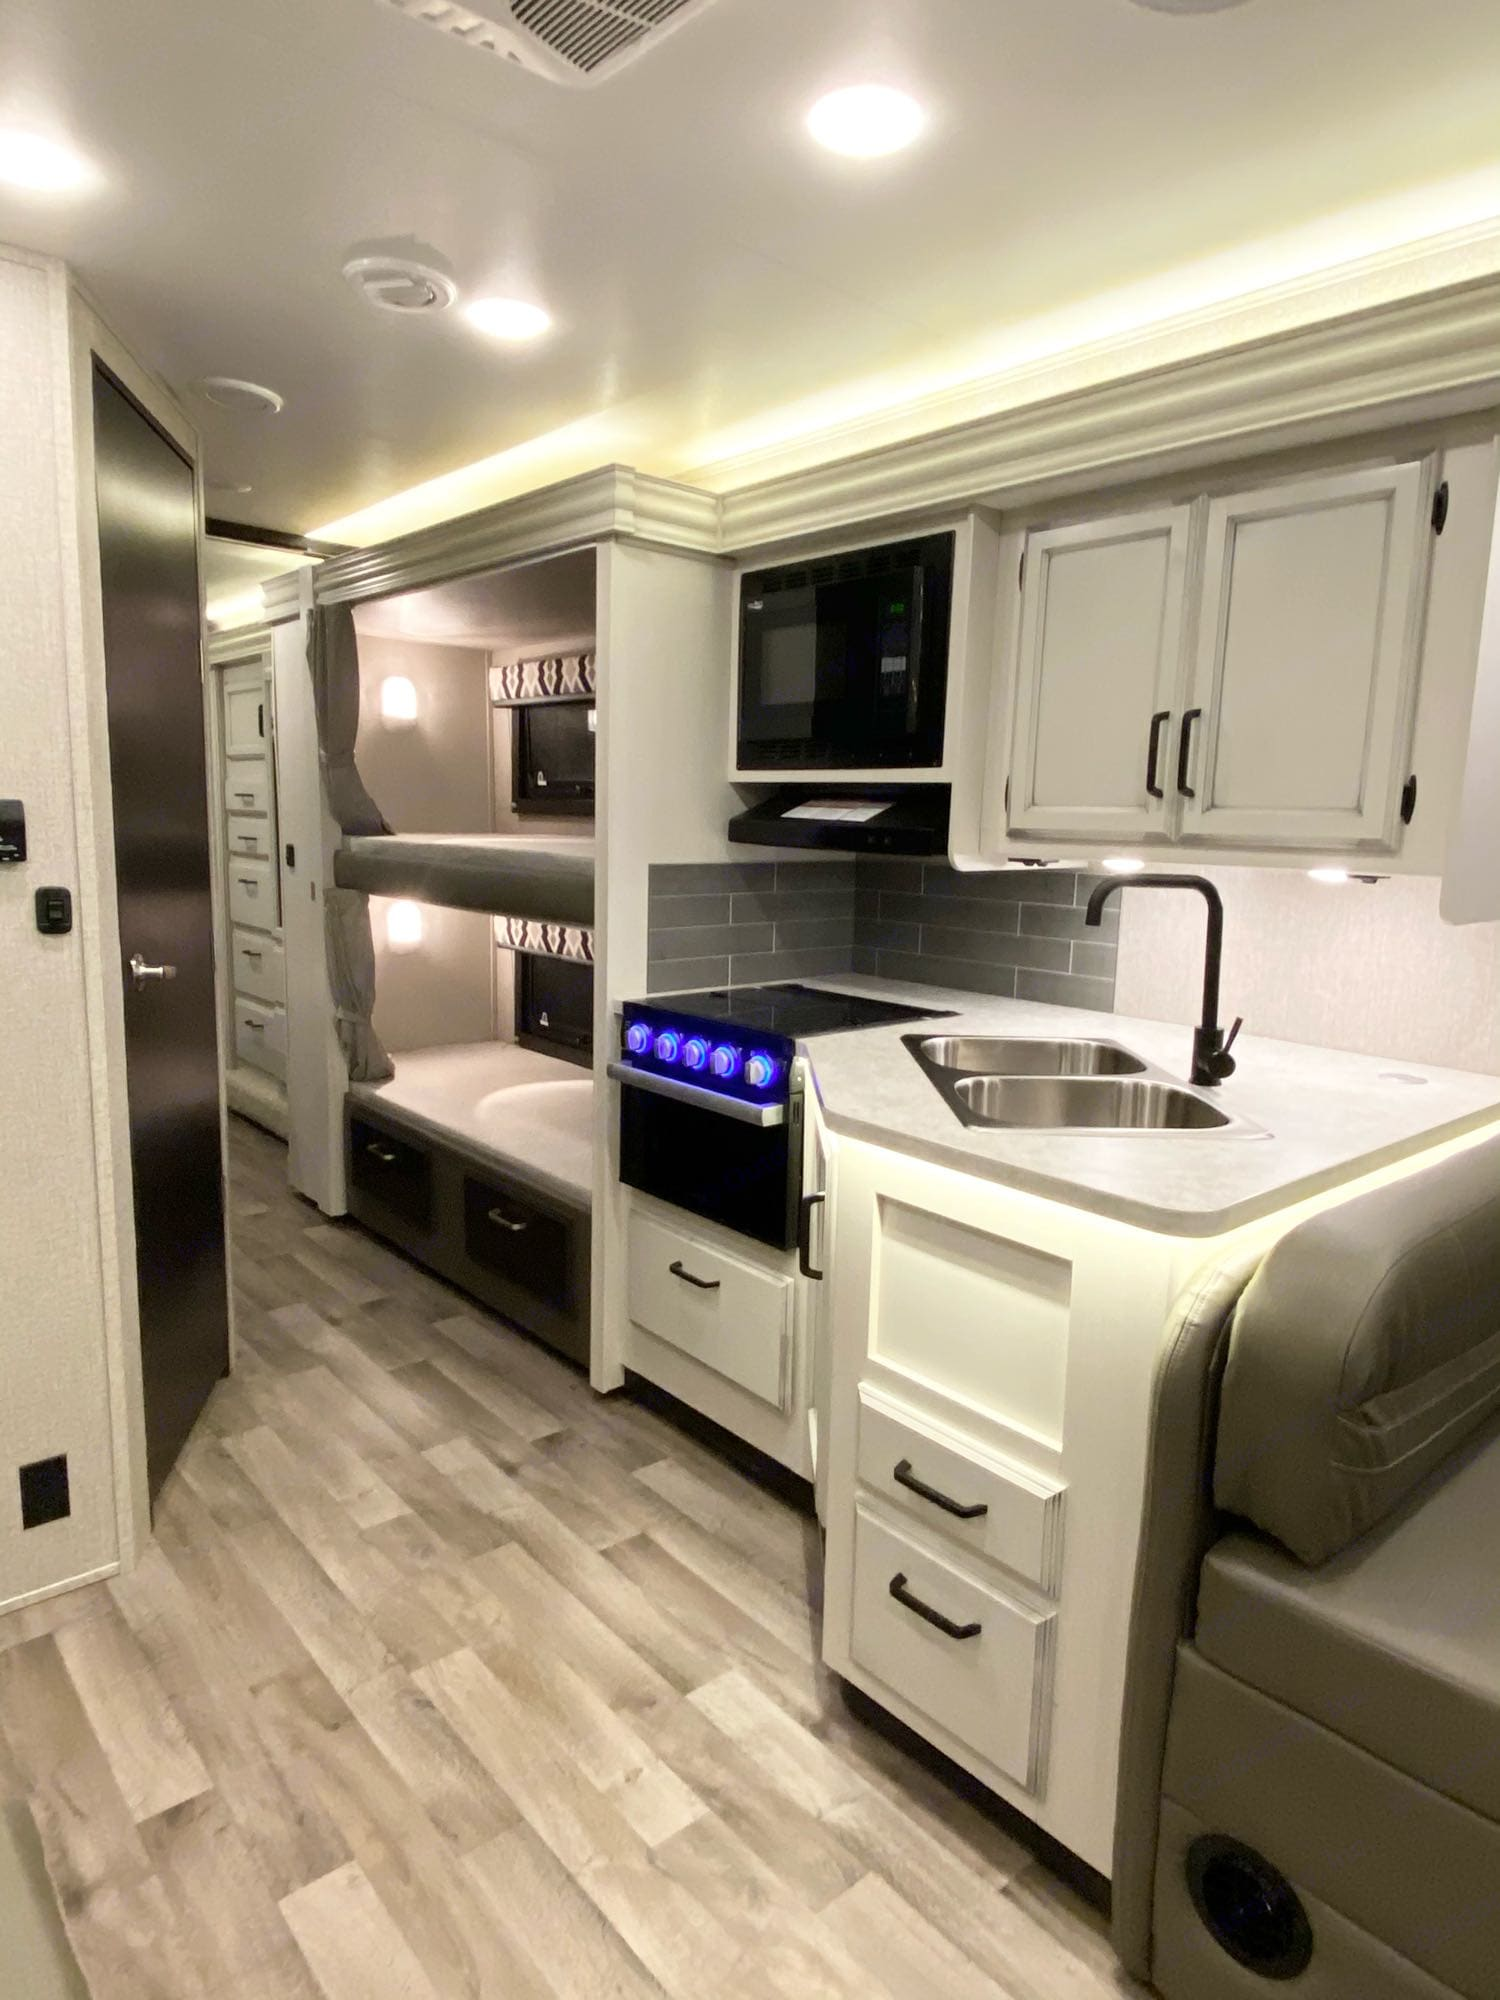 Kitchen space and peek into bunk beds. Jayco Redhawk 2021